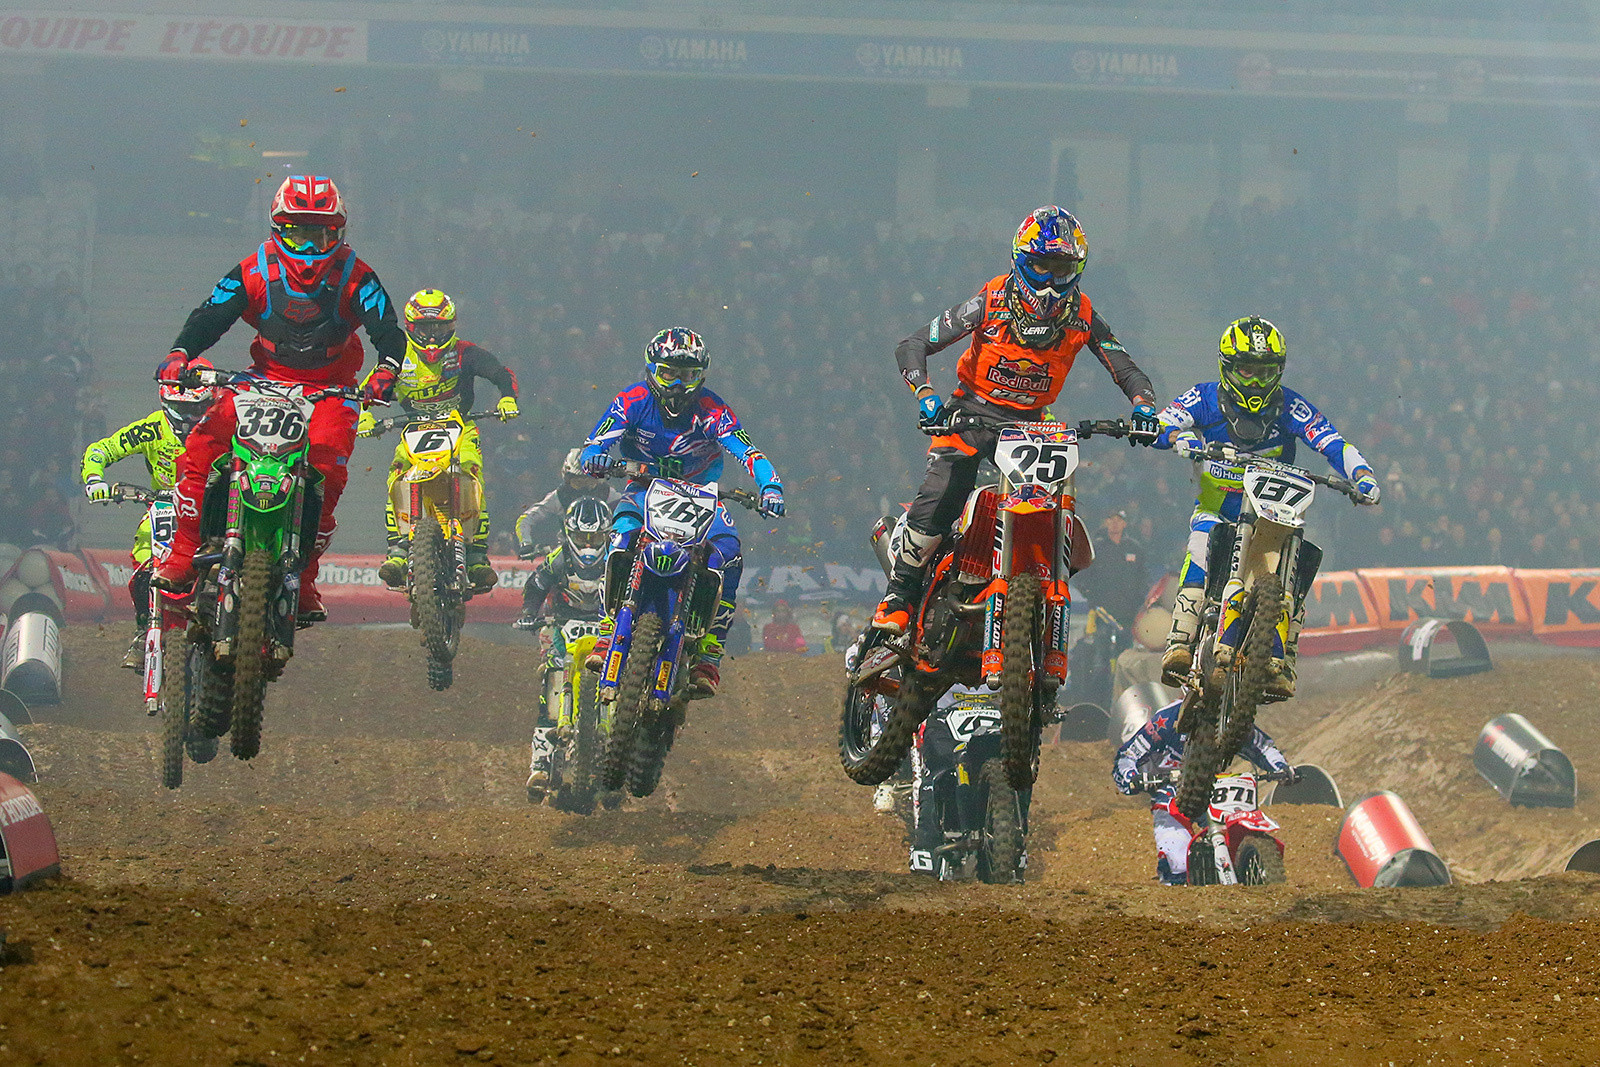 450 Heat Race Two - Photo Gallery: Paris-Lille Supercross, Day 2 - Motocross Pictures - Vital MX